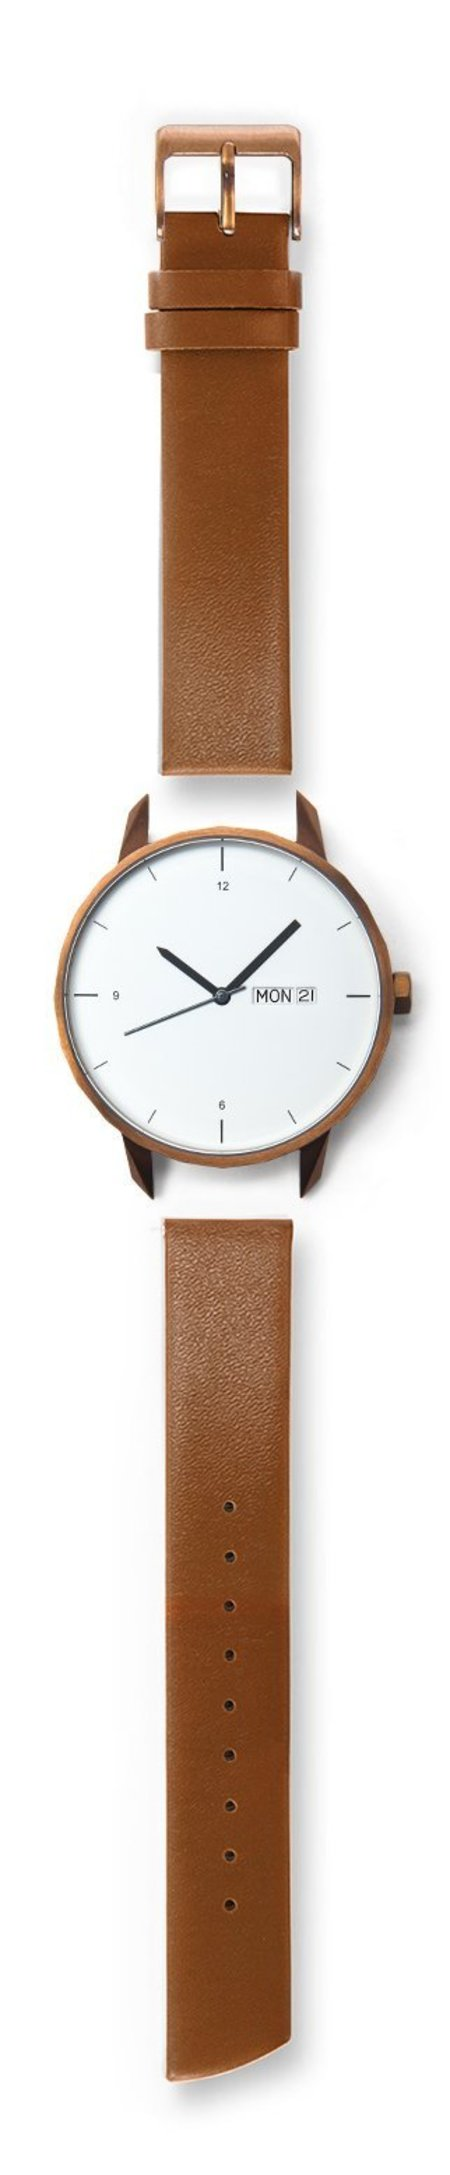 Unisex Tinker Watches 42mm Standard Strap Watch - Copper/Camel